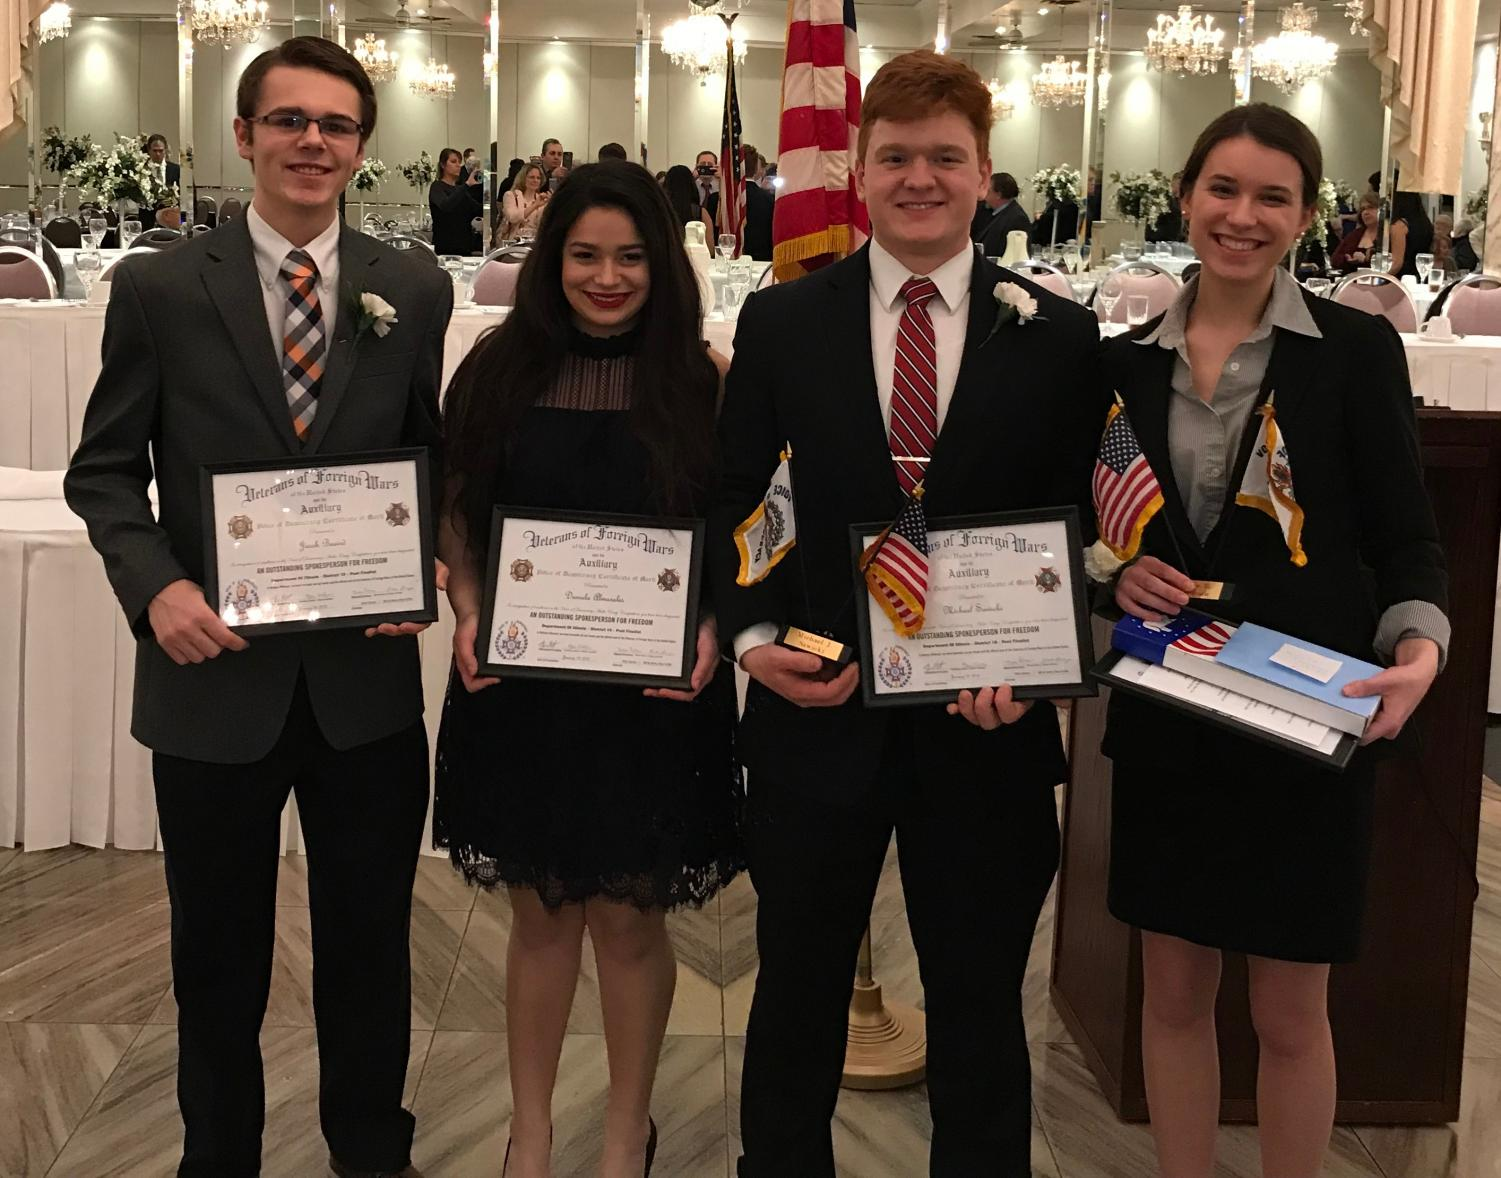 Four seniors participated in Voice of Democracy in 2017. Natalie Thompson won $750 in the competition. At last year's award ceremony, from left, are Jacob Beaird, Daniela Almarales, Michael Sawicki, and Thompson.